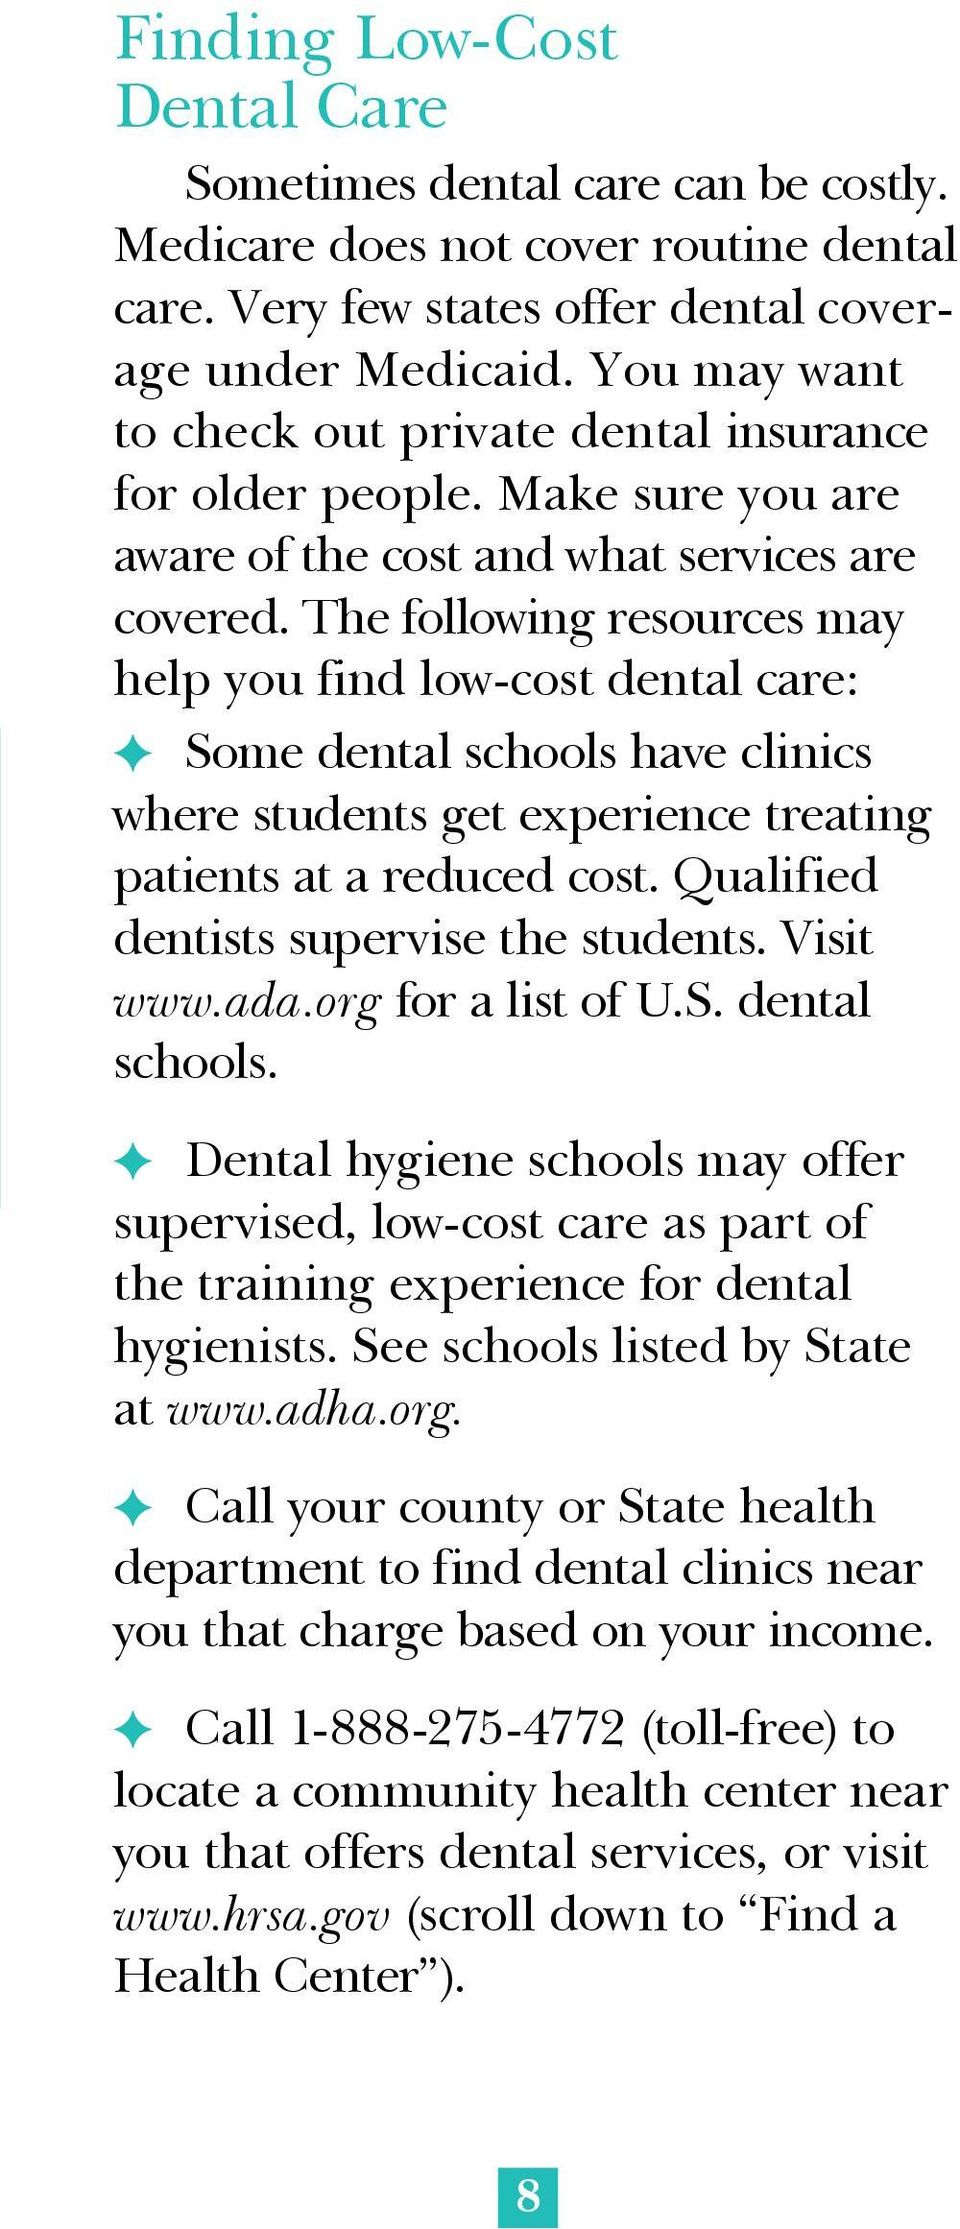 The following resources may help you find low-cost dental care: F Some dental schools have clinics where students get experience treating patients at a reduced cost.